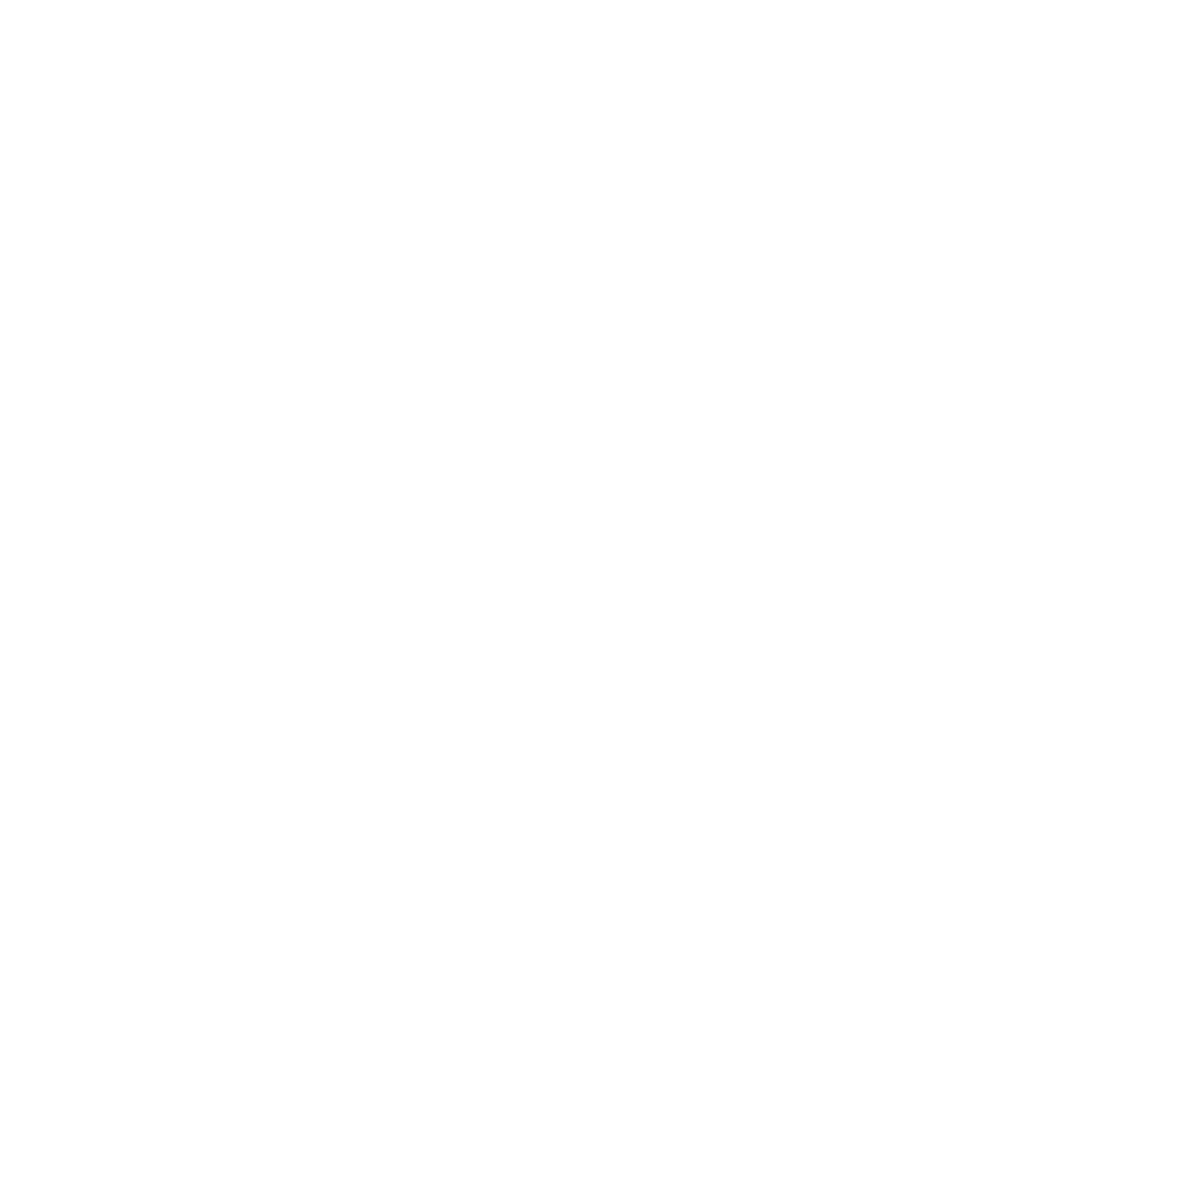 Sojo Kitchen | Catering and Events